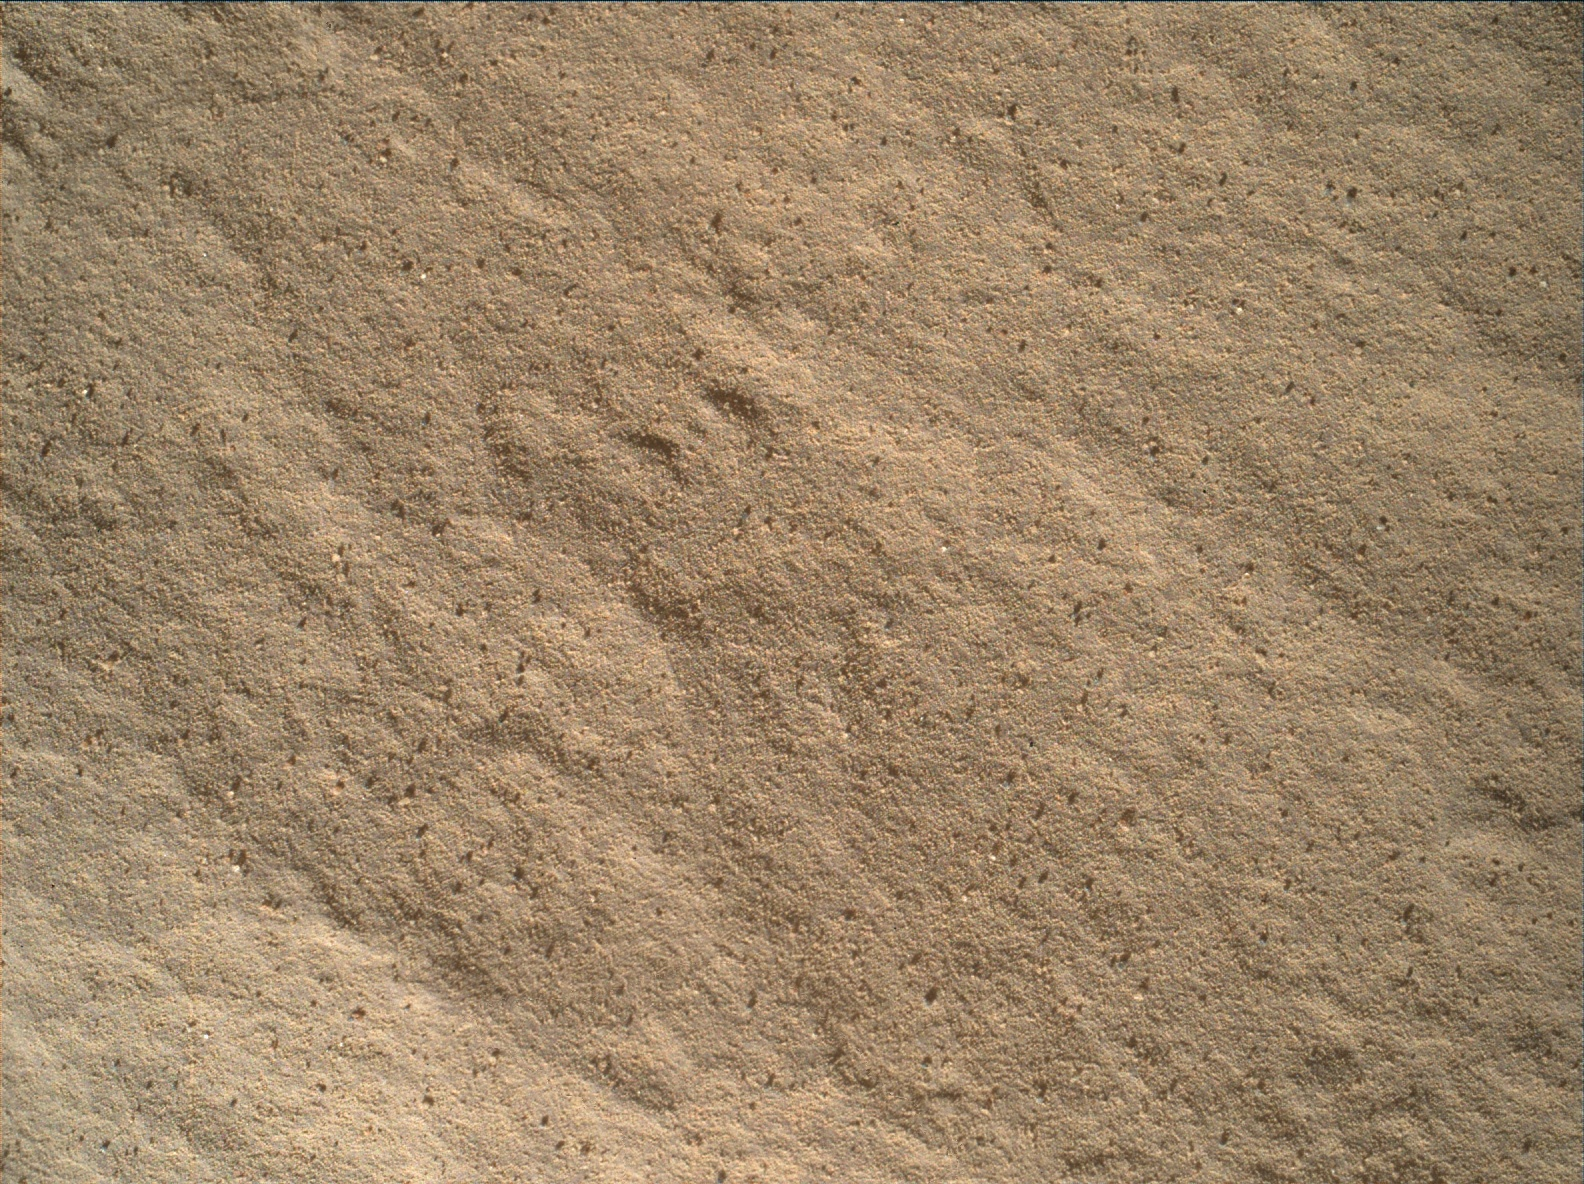 Nasa's Mars rover Curiosity acquired this image using its Mars Hand Lens Imager (MAHLI) on Sol 1826